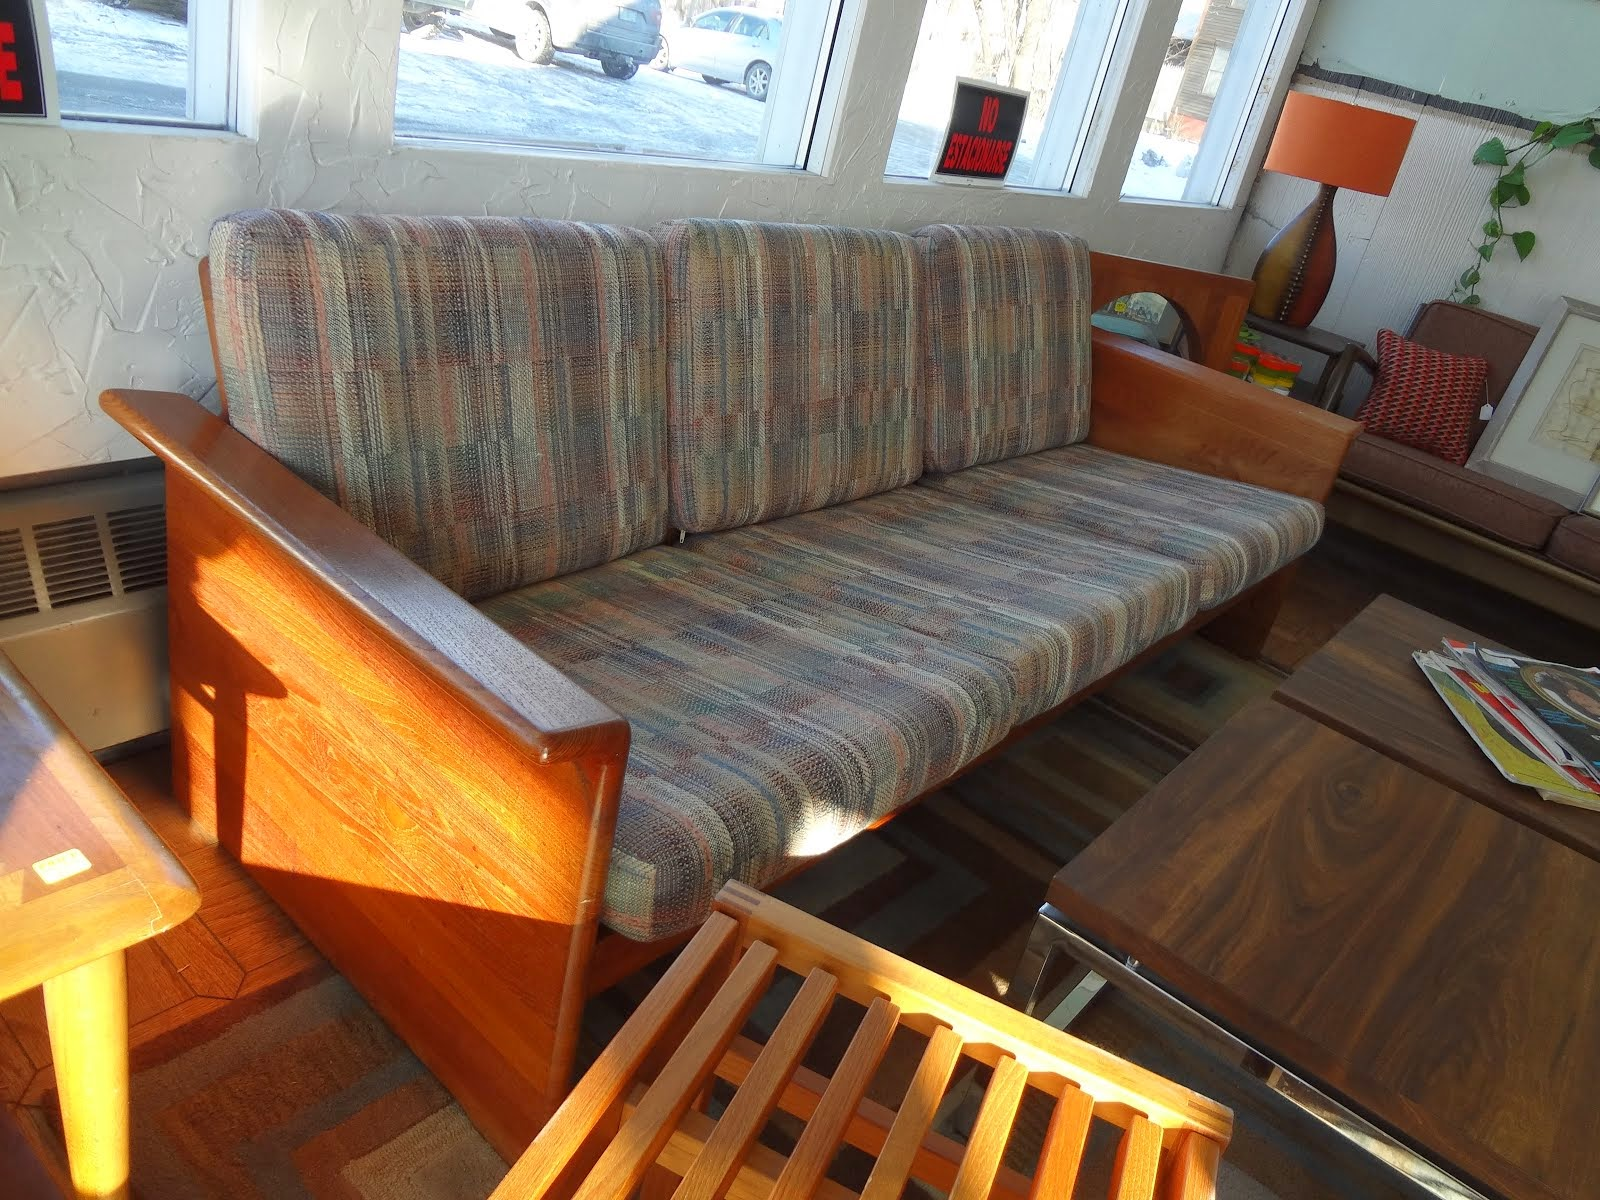 Danish modern sofas, chairs & end tables